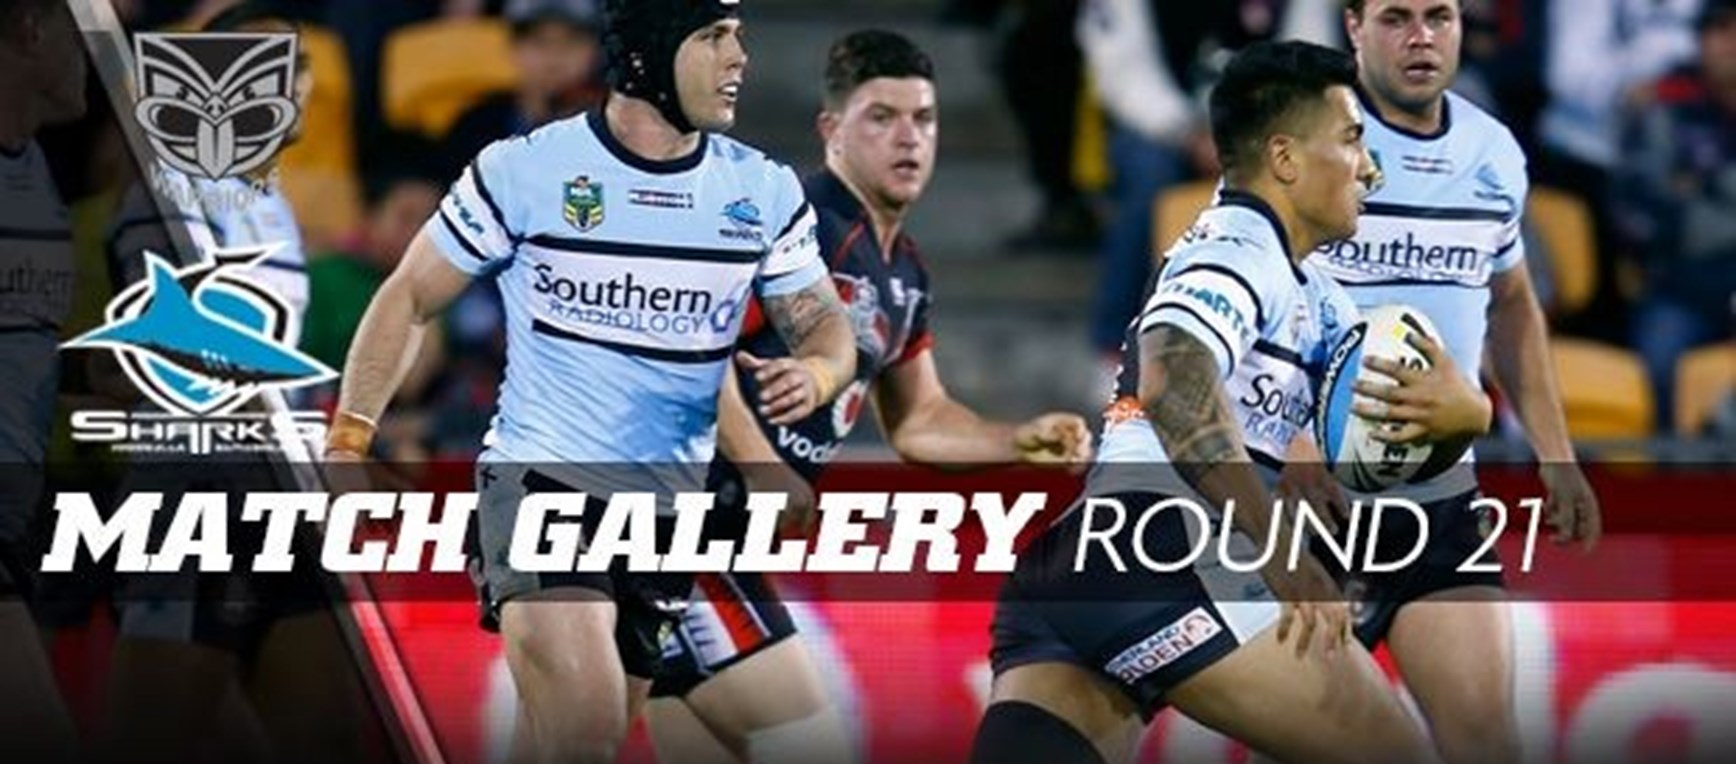 Rd21 MATCH GALLERY | Sharks in action